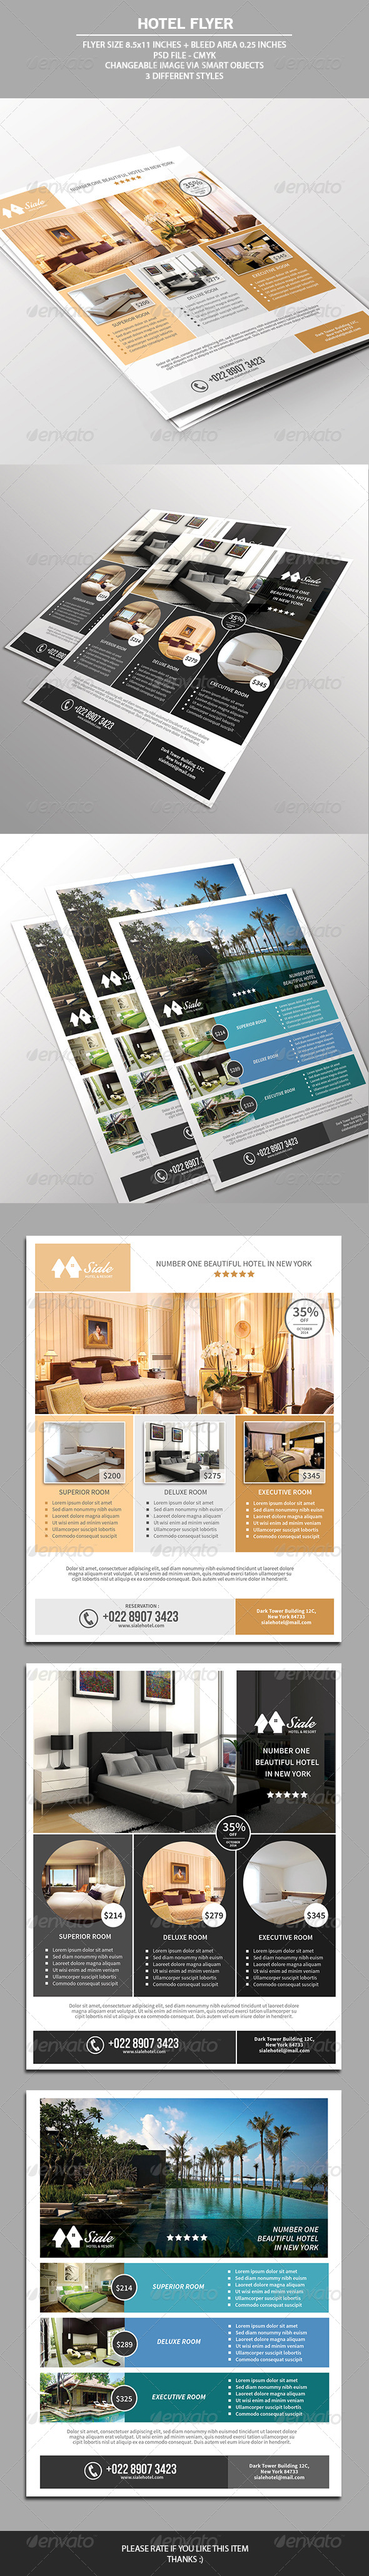 GraphicRiver Hotel Flyer Template 7528621